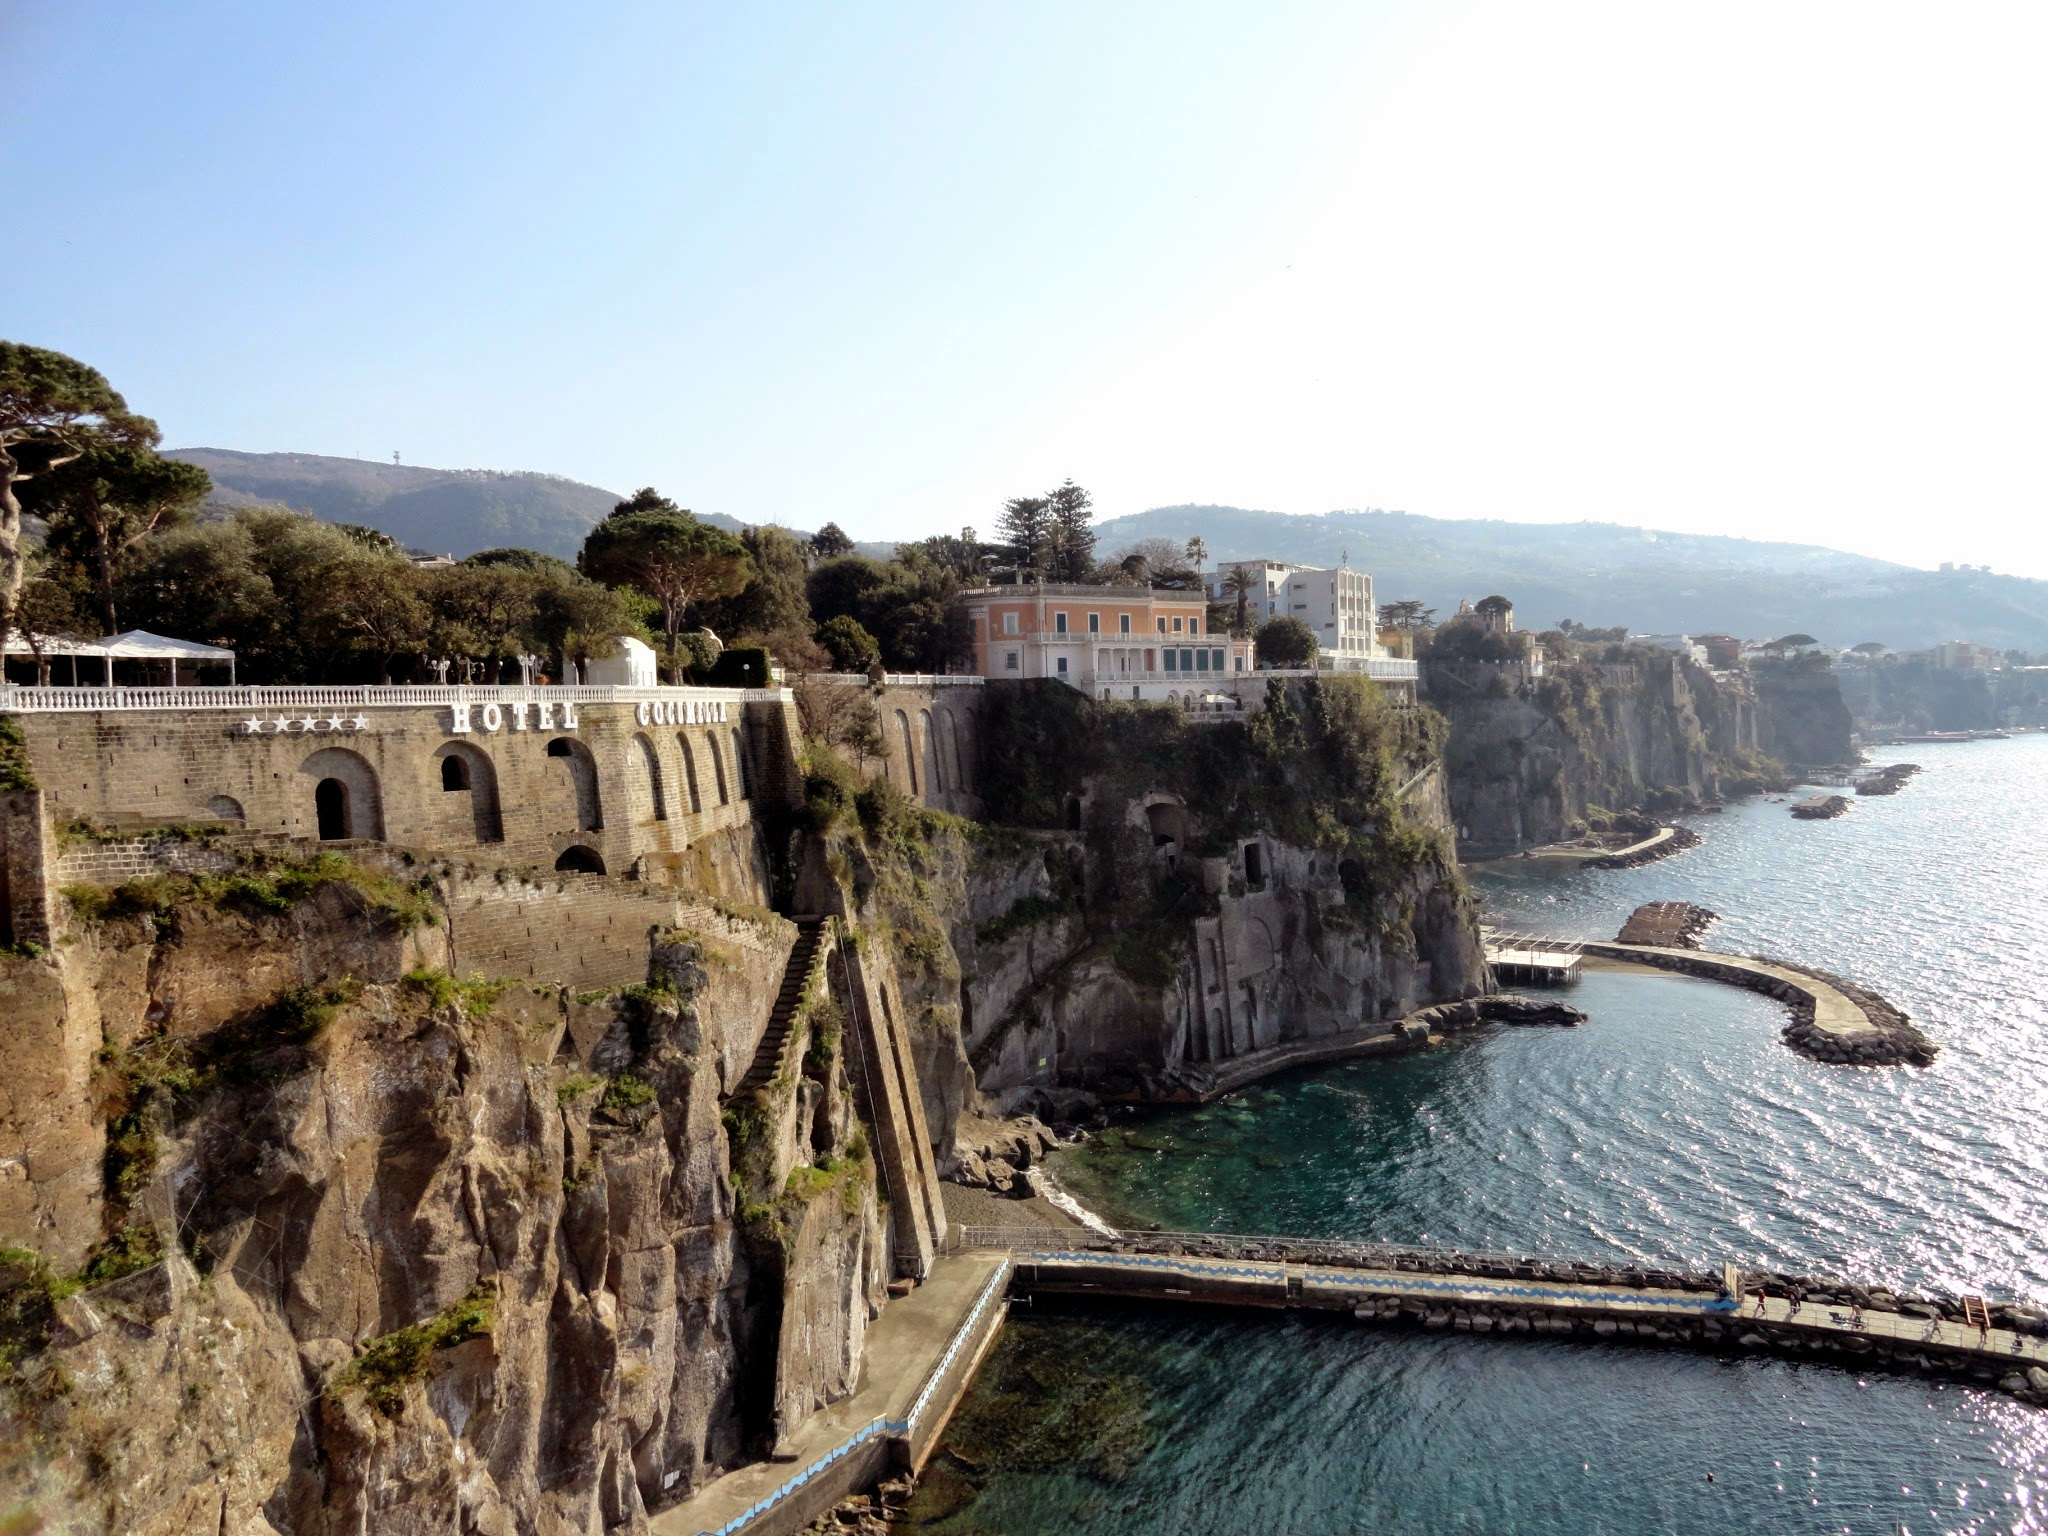 Town of Sorrento, Italy is beautiful. ouritalianjourney.com